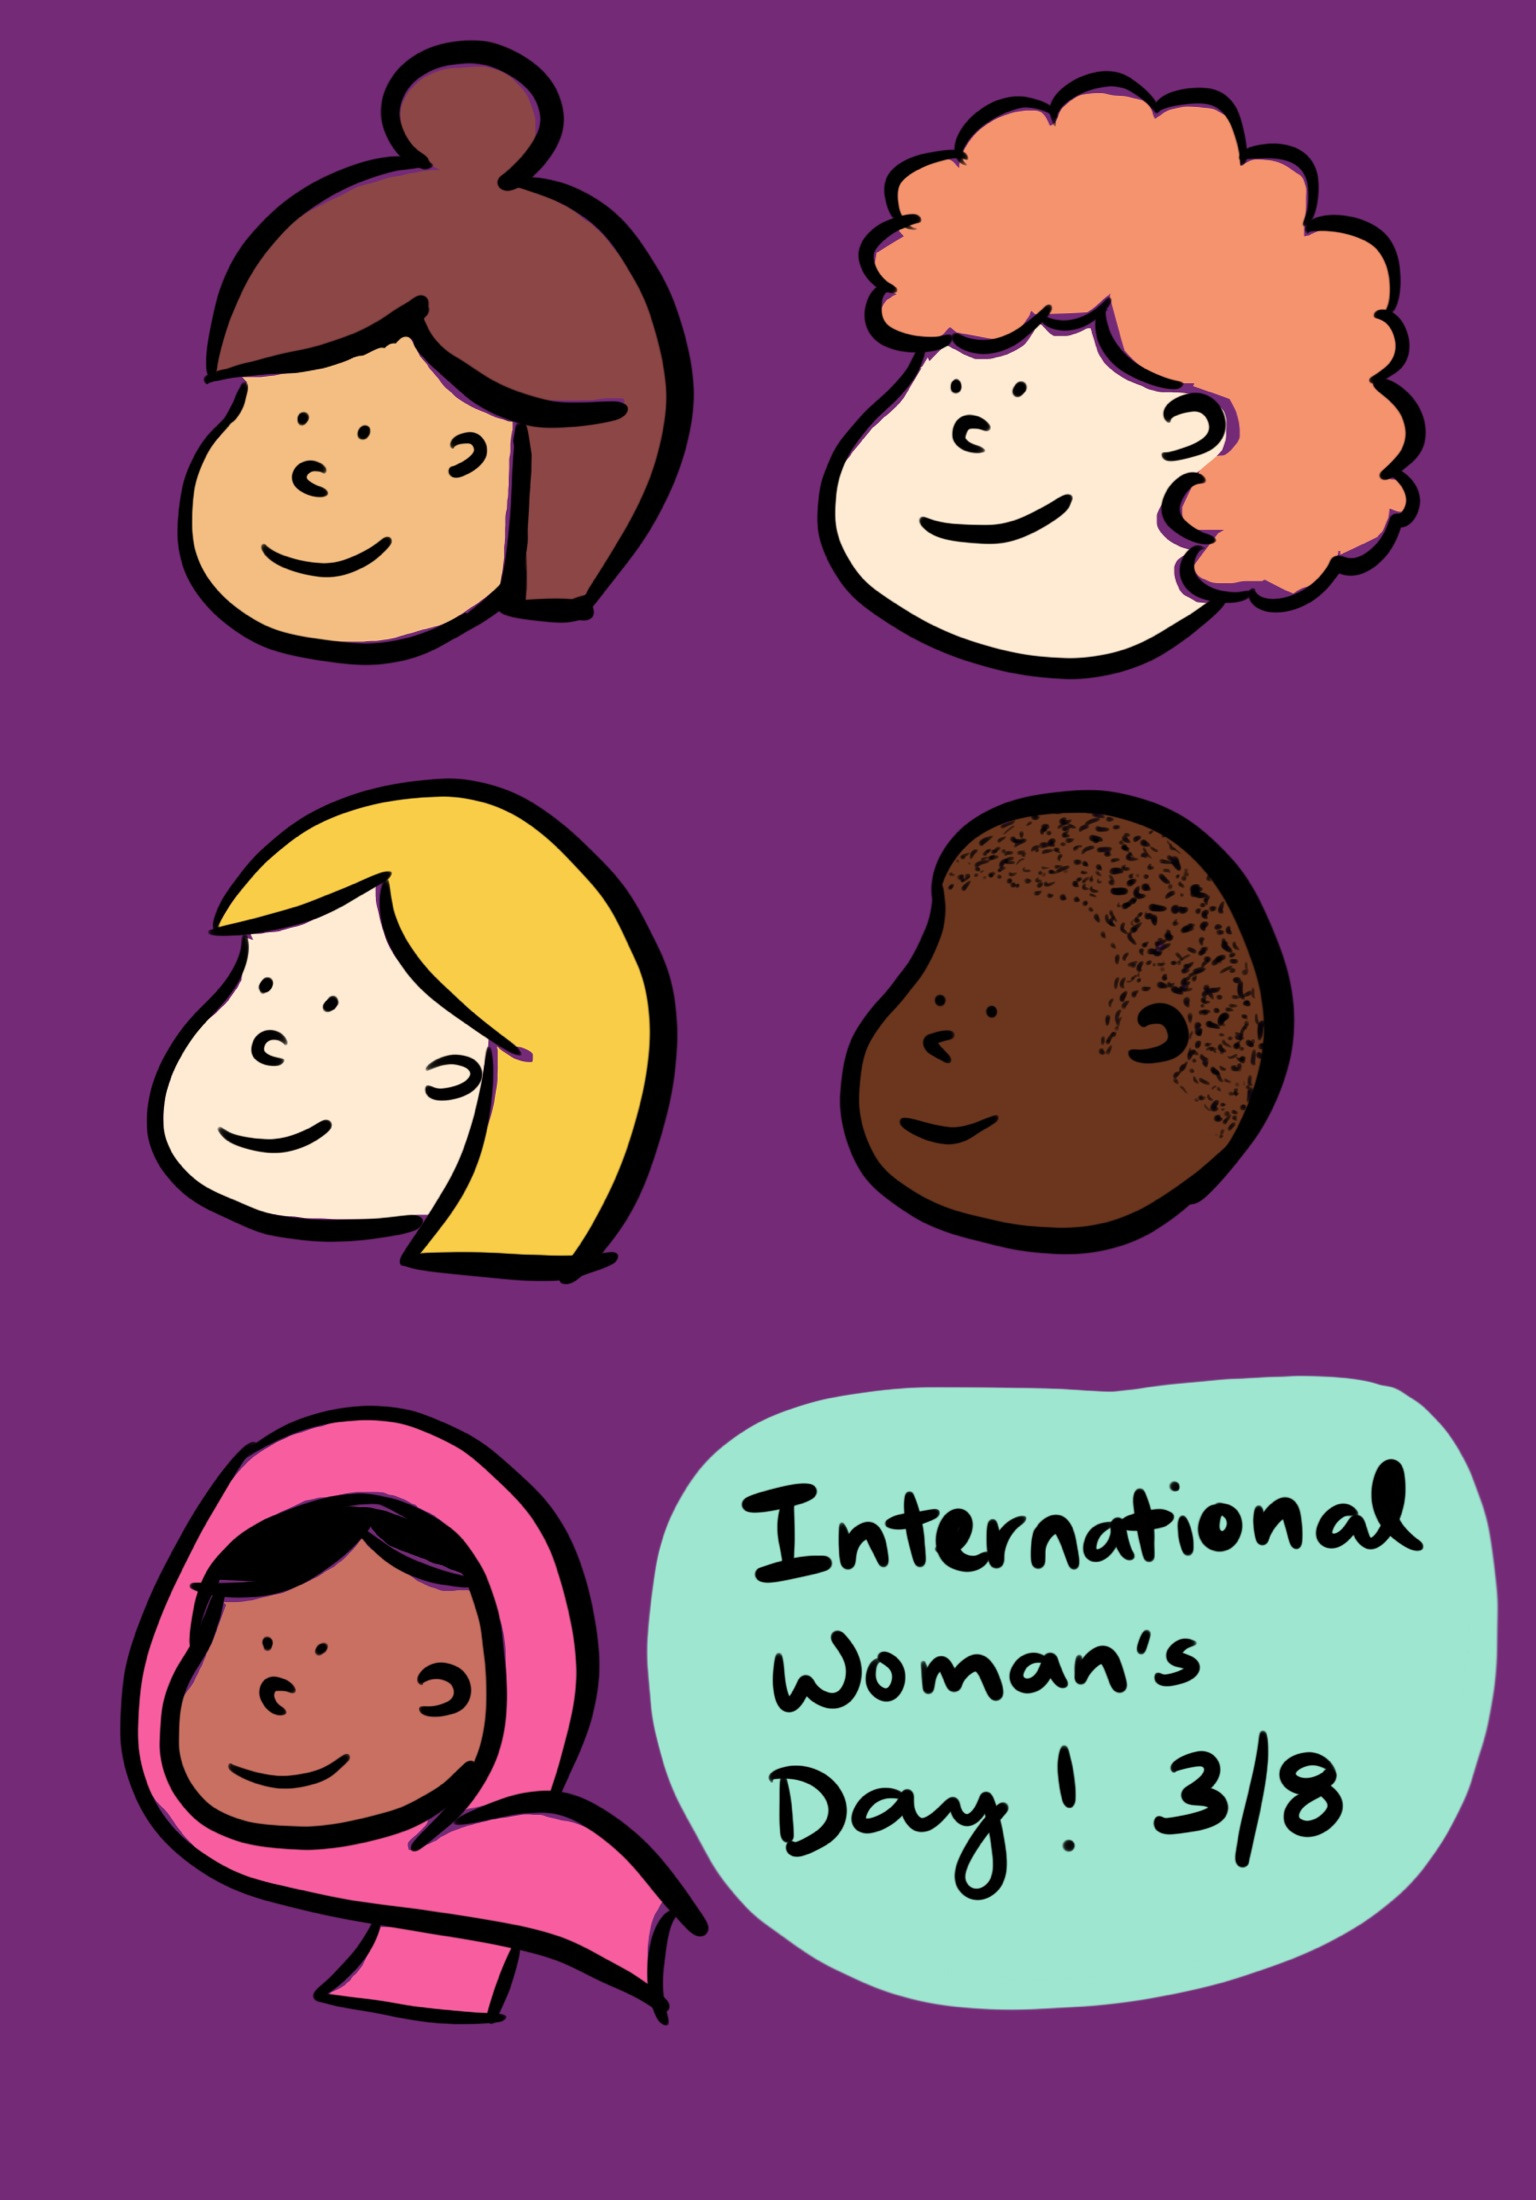 internationalwomensday_030719.jpg